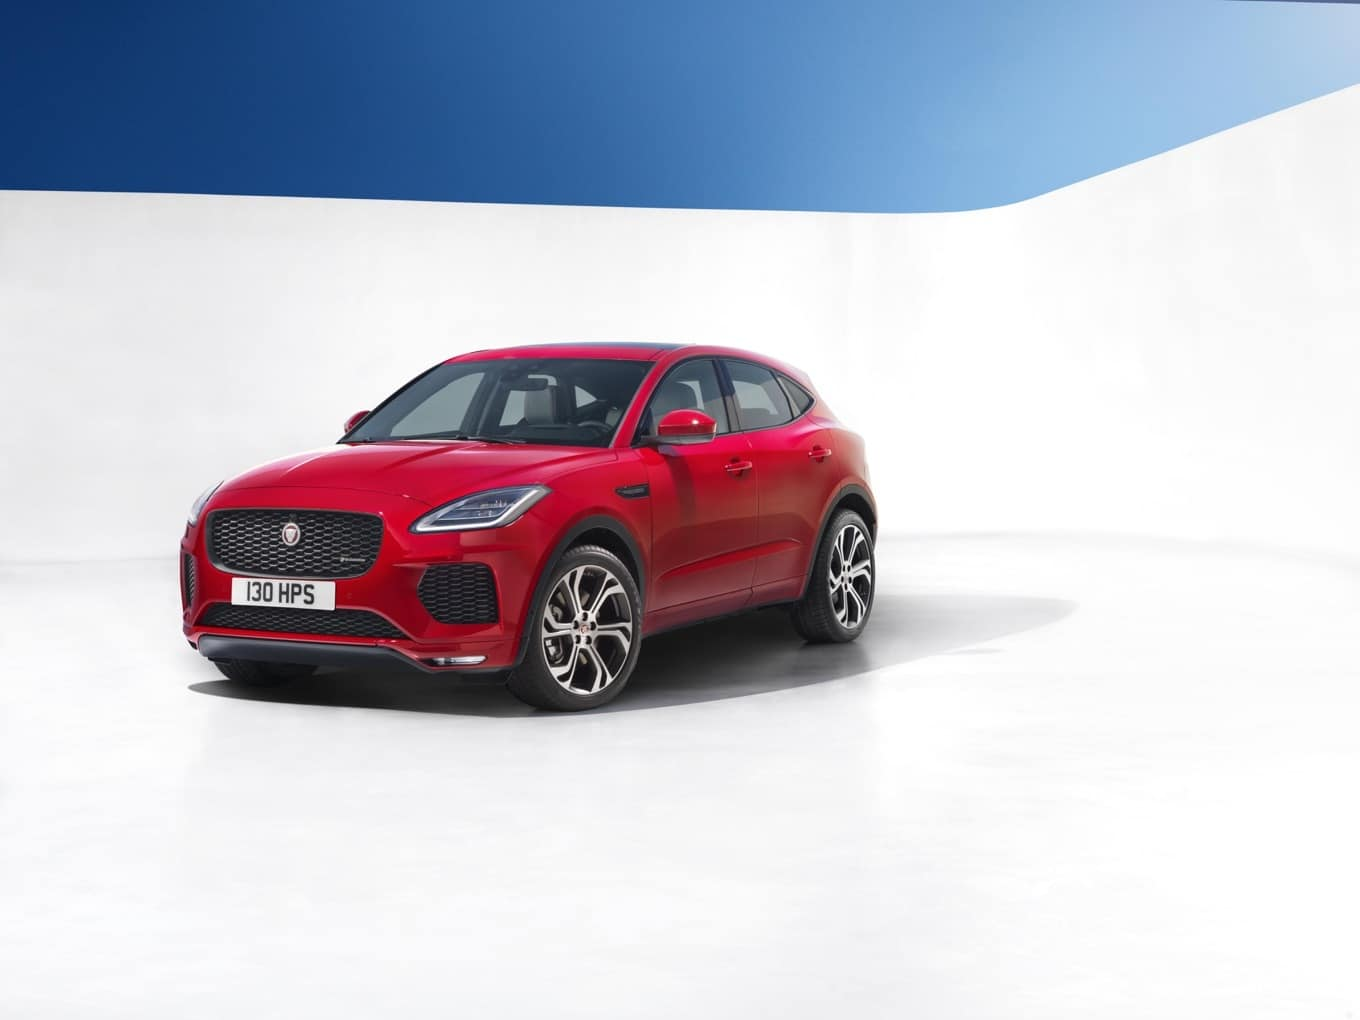 New Jaguar E-PACE Specifications Released - Just British